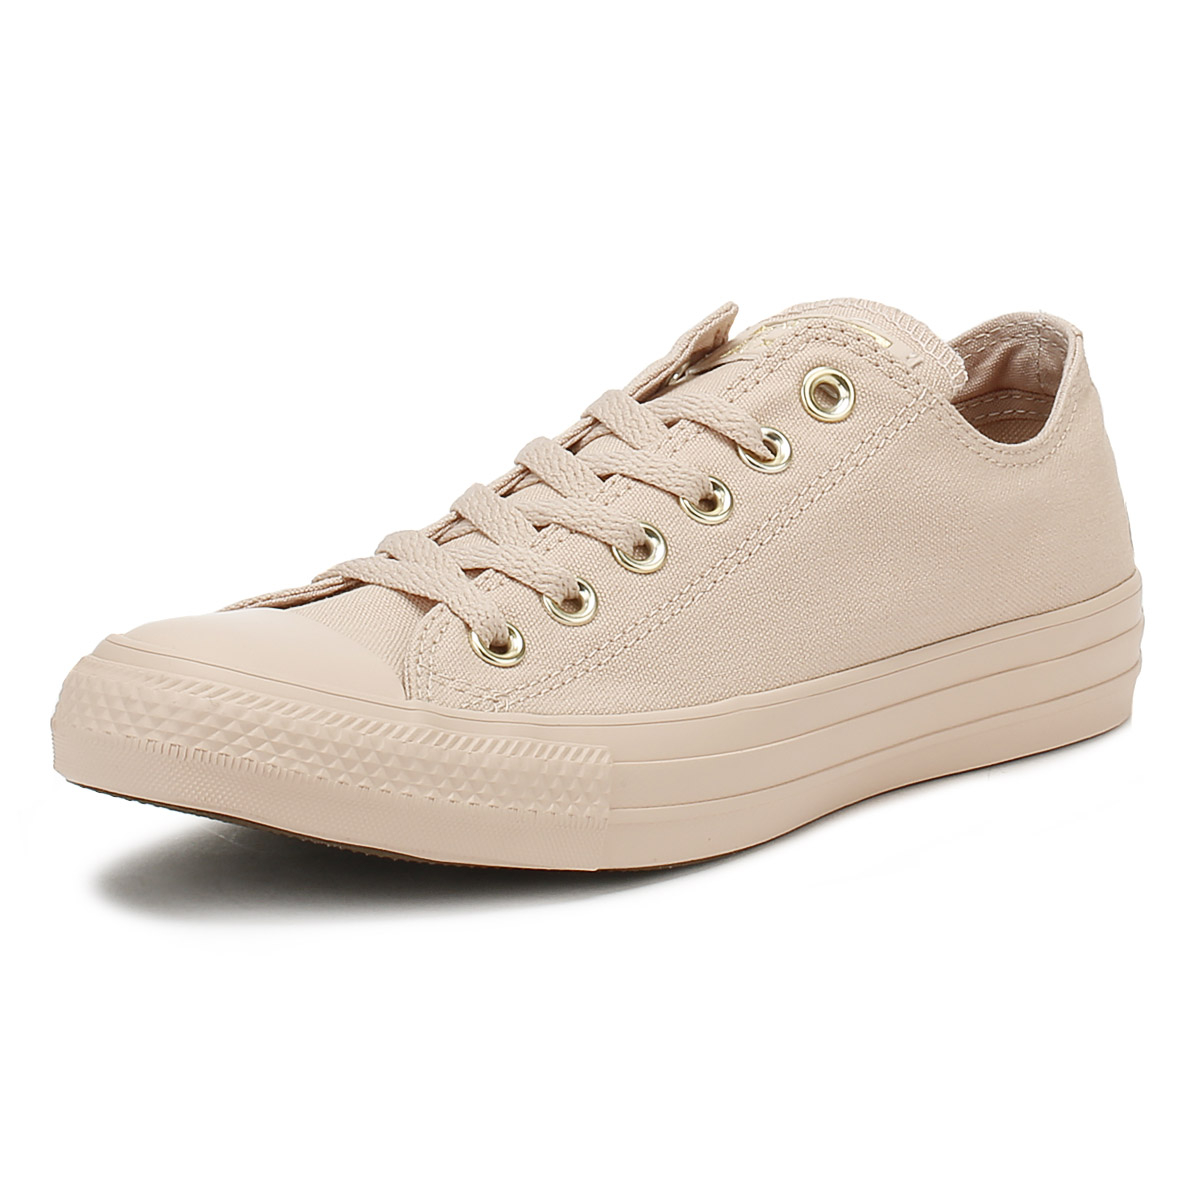 15c6cfd88a12 Details about Converse Chuck Taylor All Star Womens Ox Trainers Particle  Beige Lace Up Shoes